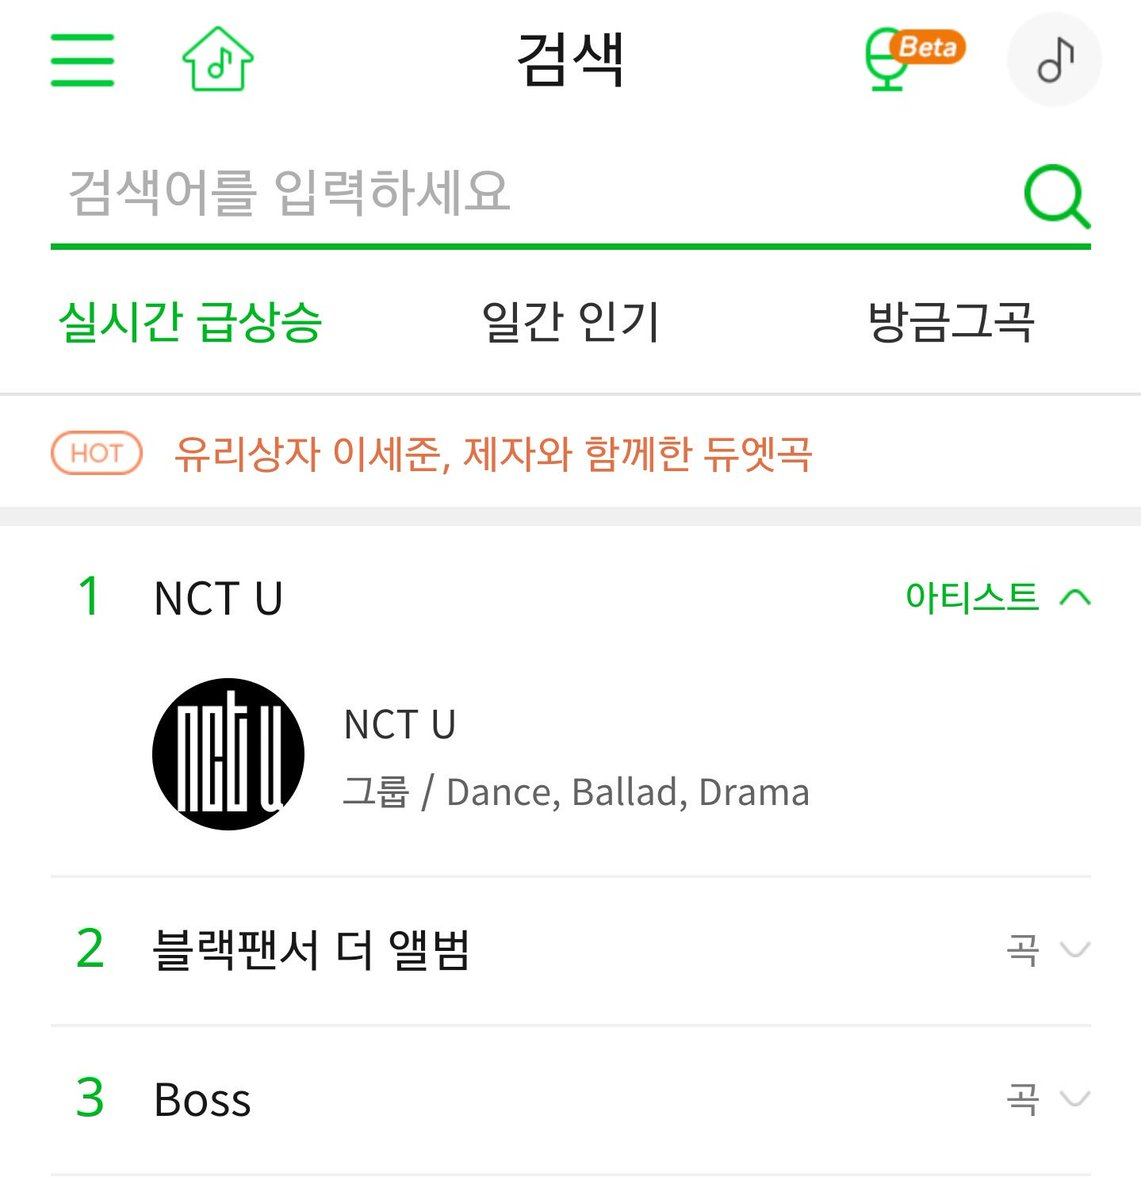 NCT U n° 1 on MELON's search and BOSS n°...